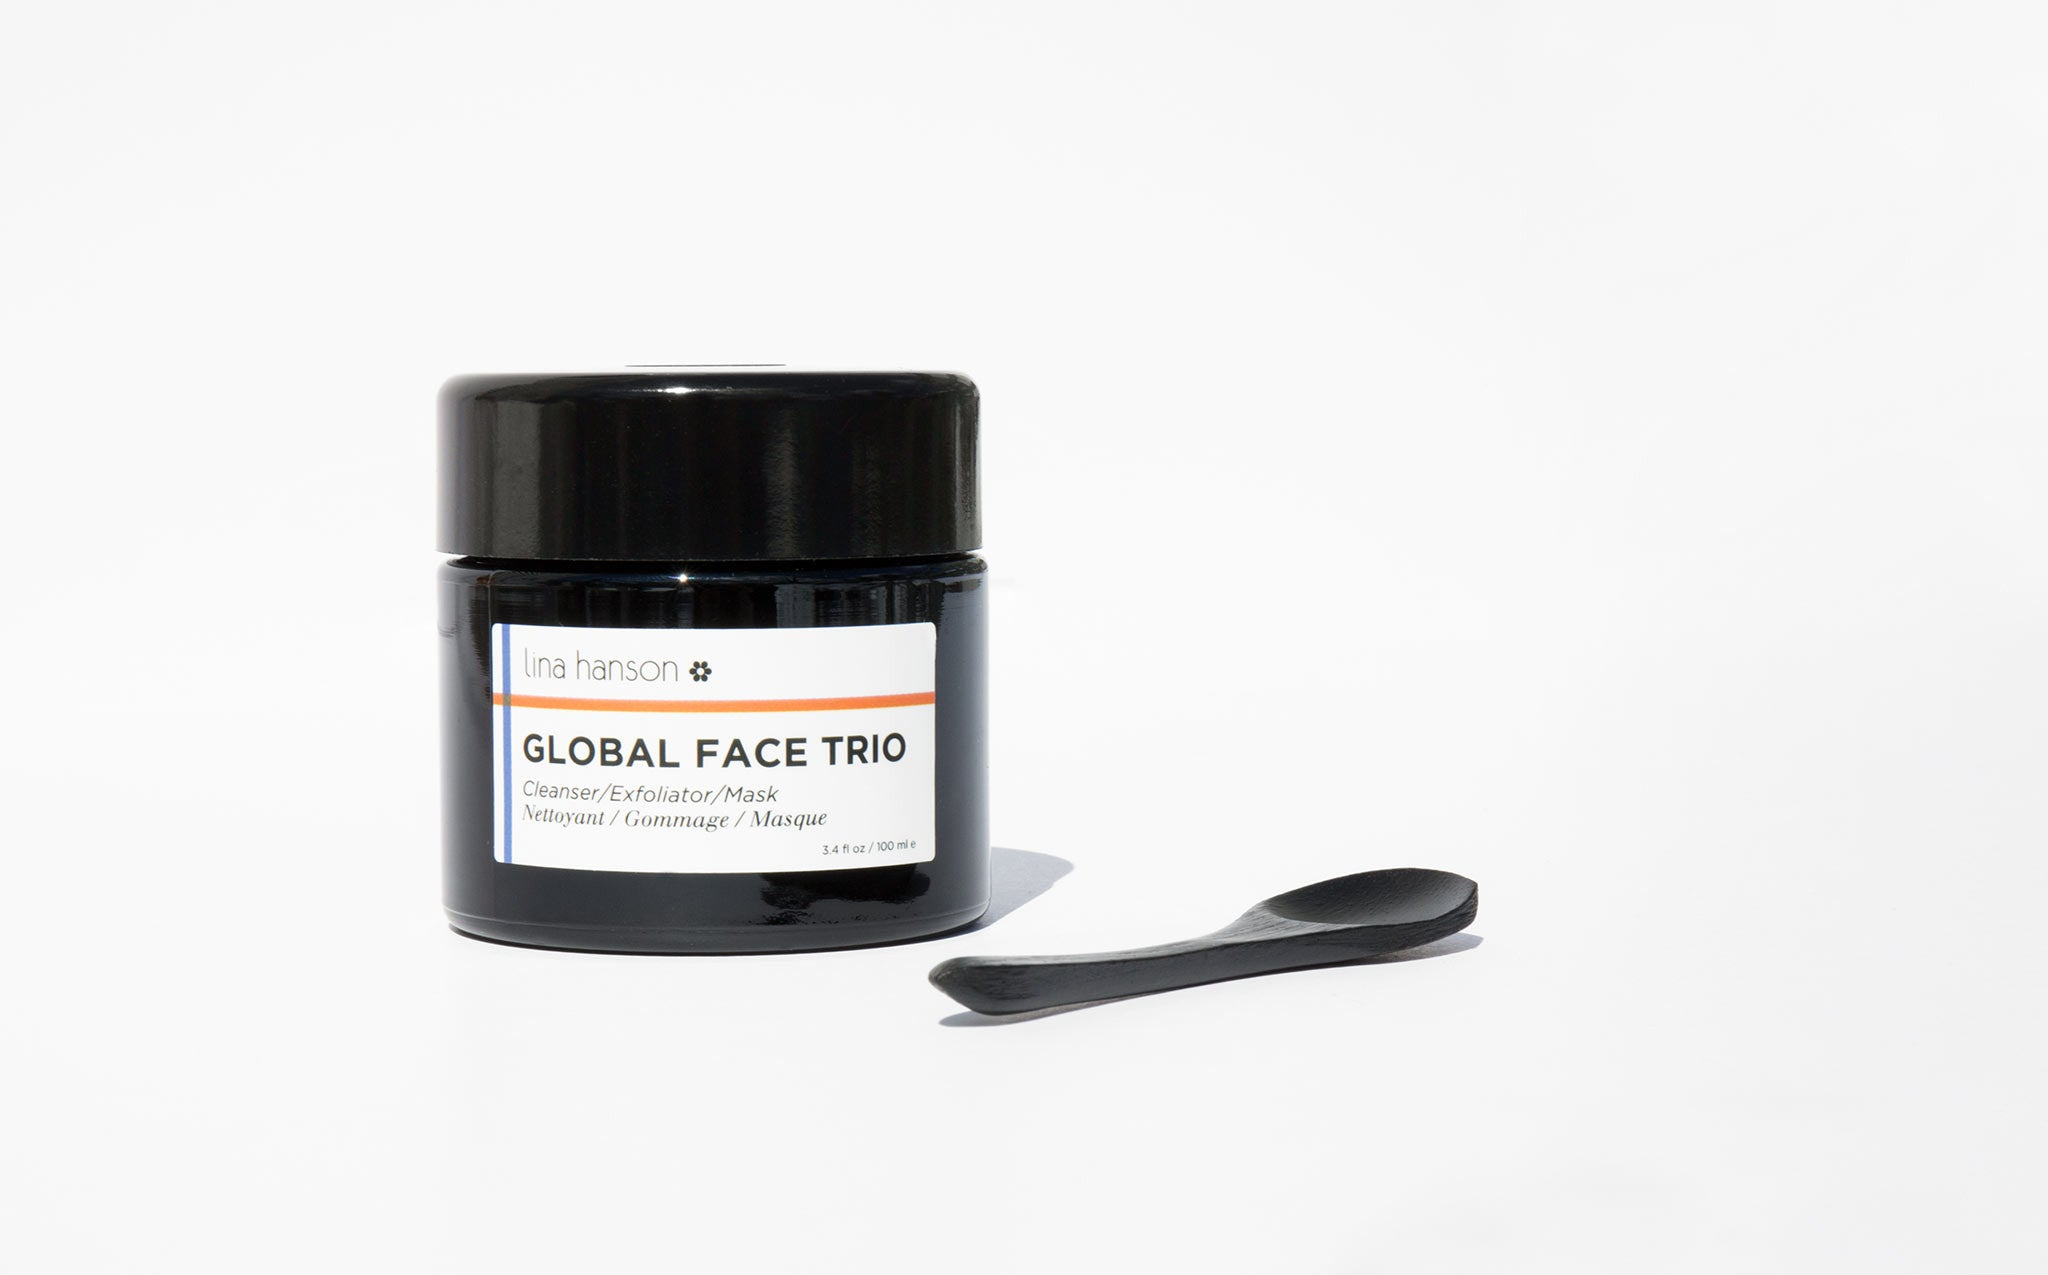 Lina Hanson Global Face Trio